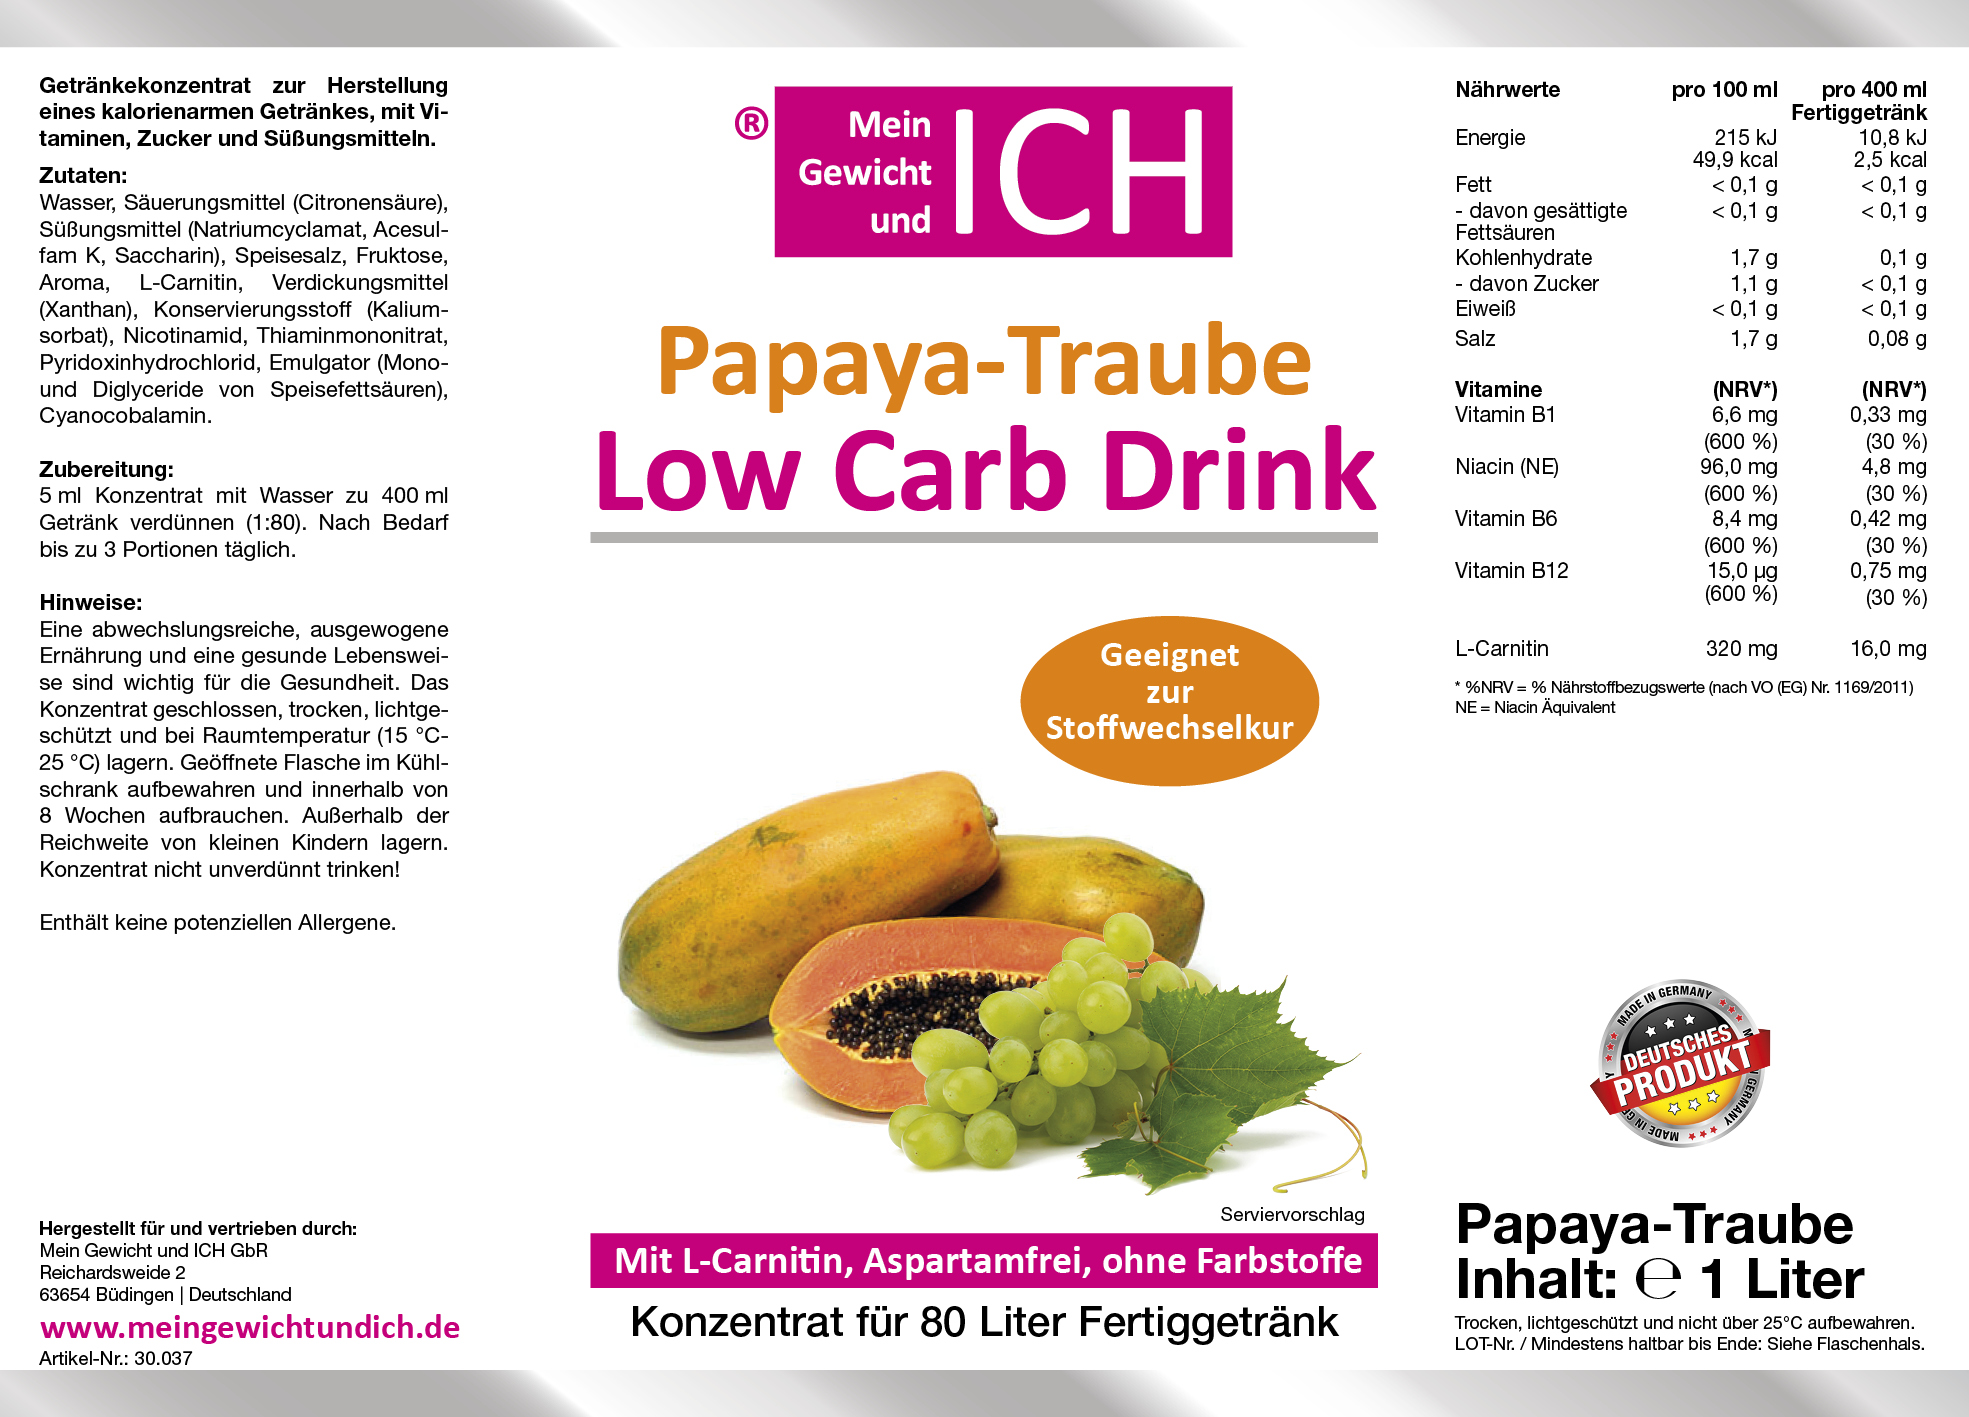 Low Carb Sirup mit L-Carnitin 1:80 | Schuck Fitness